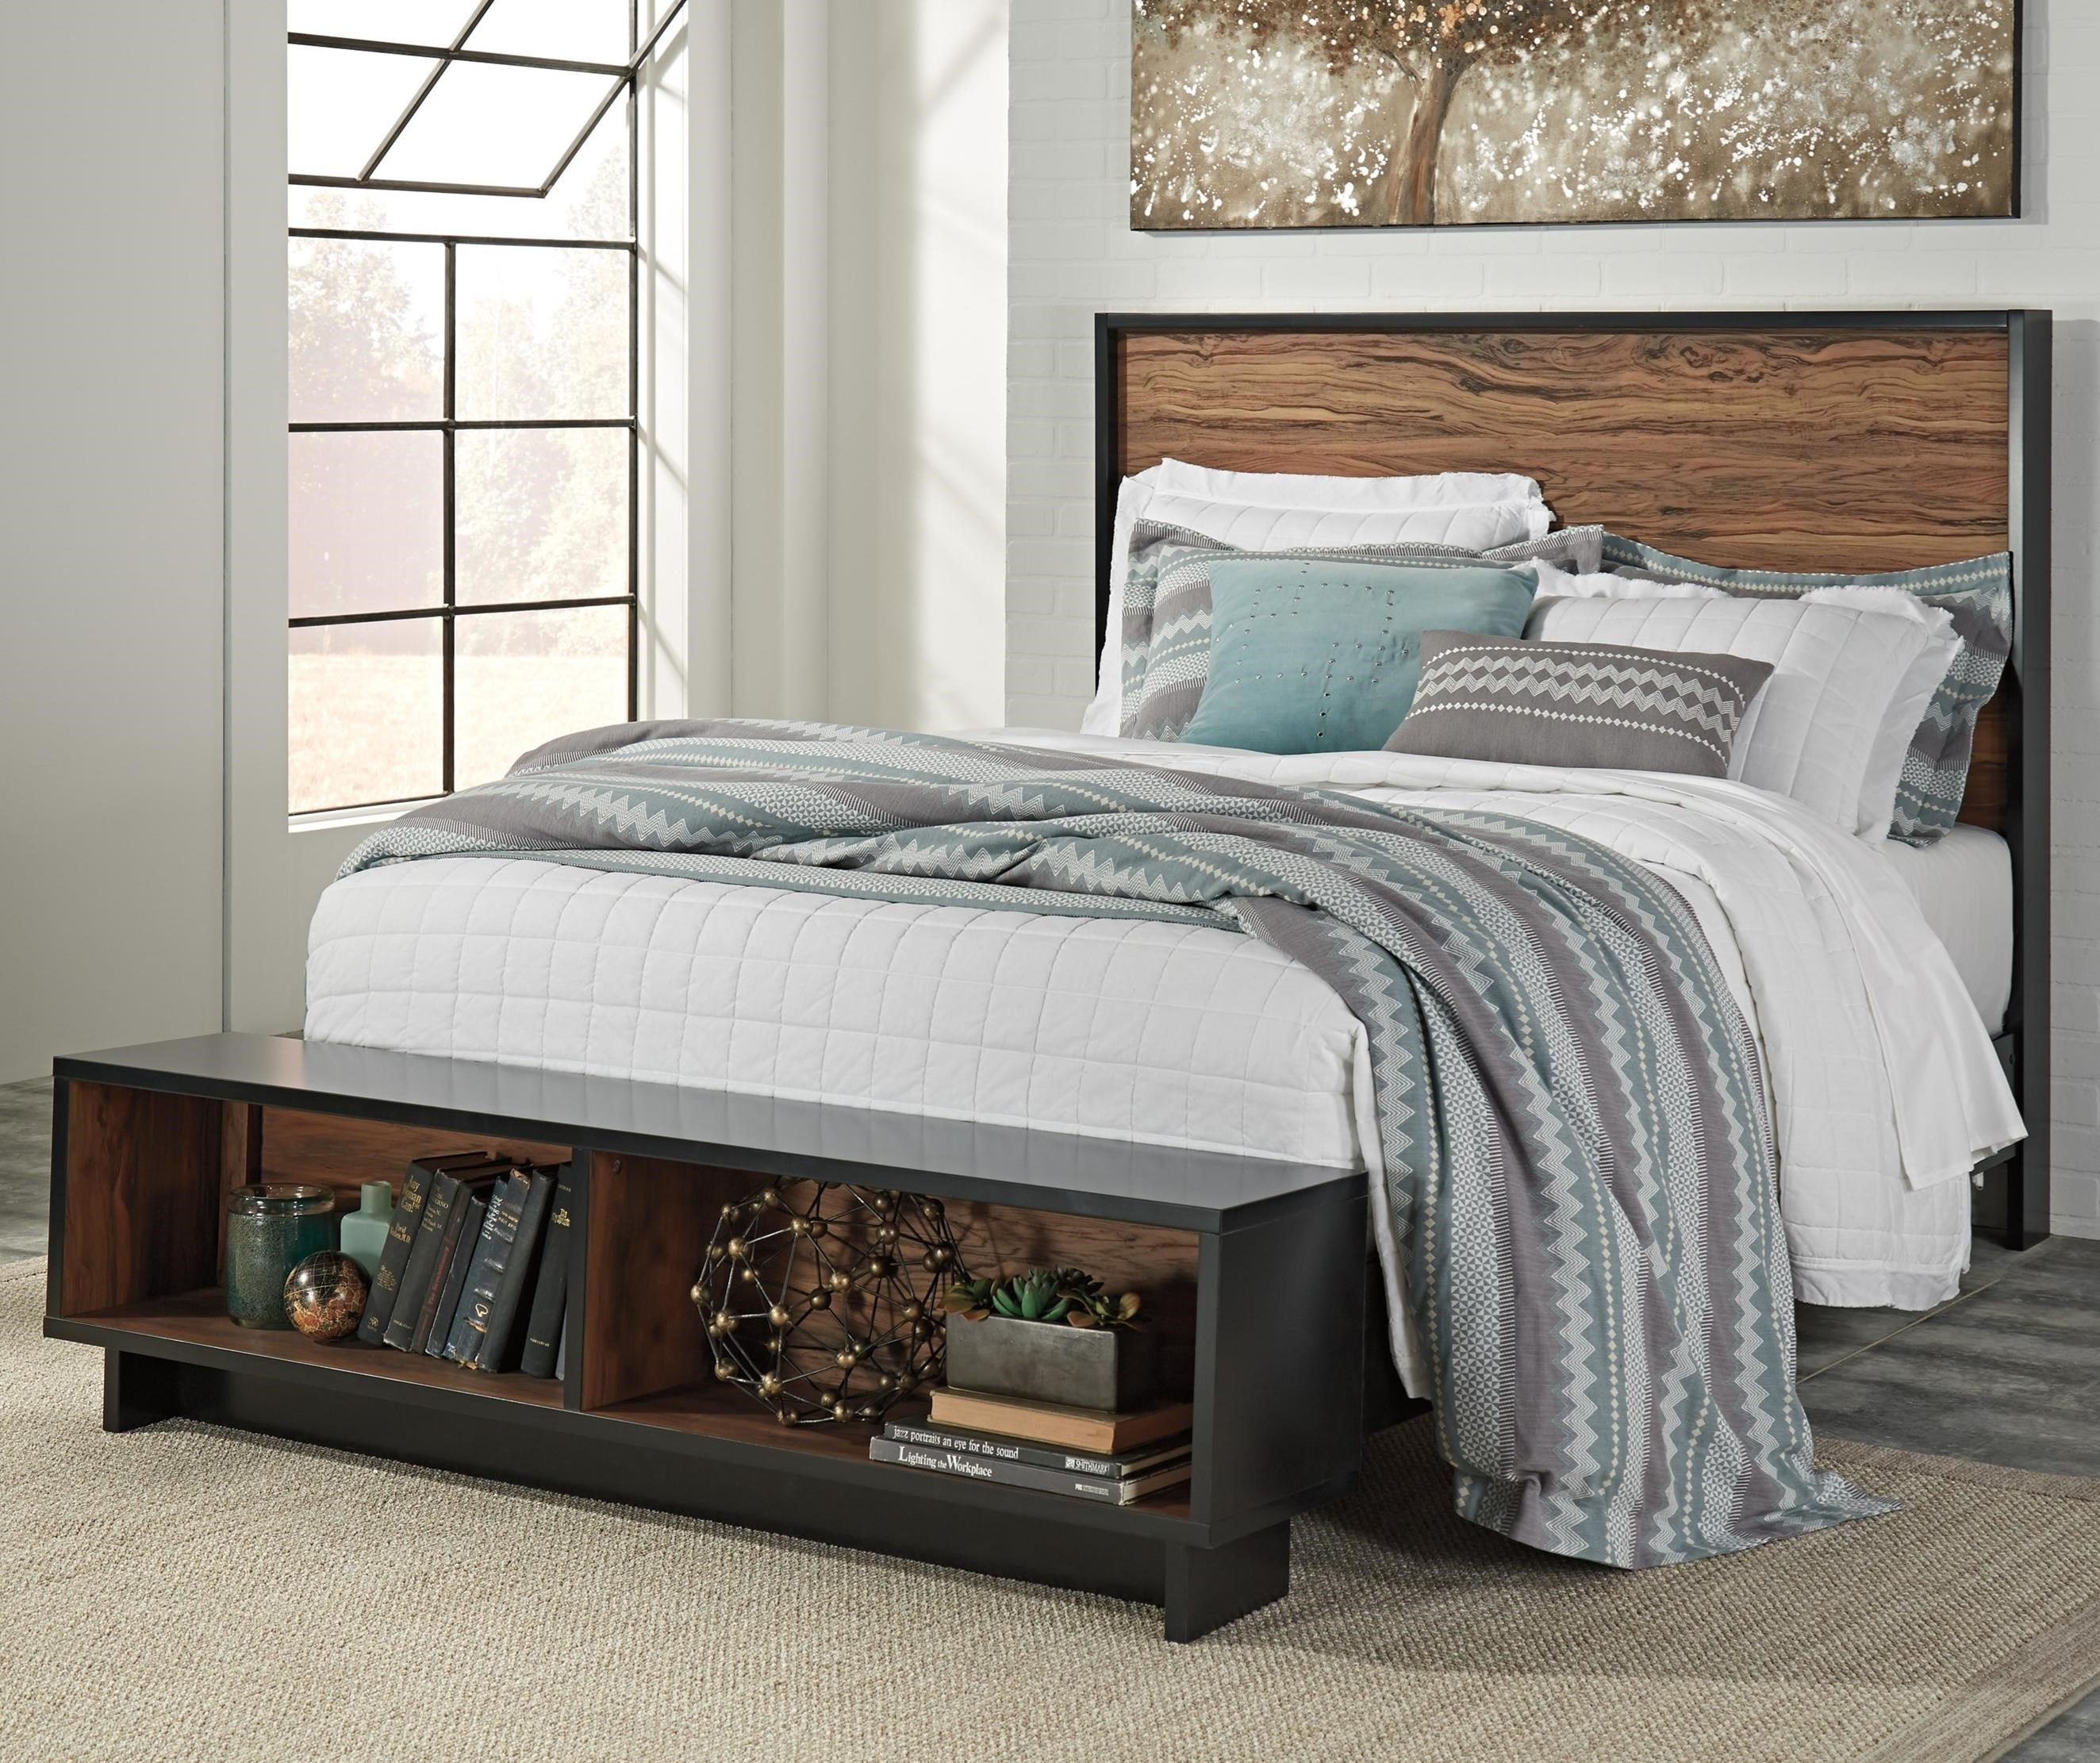 fcs bench full history storage photo interior of imposing size footboard design march inspirations